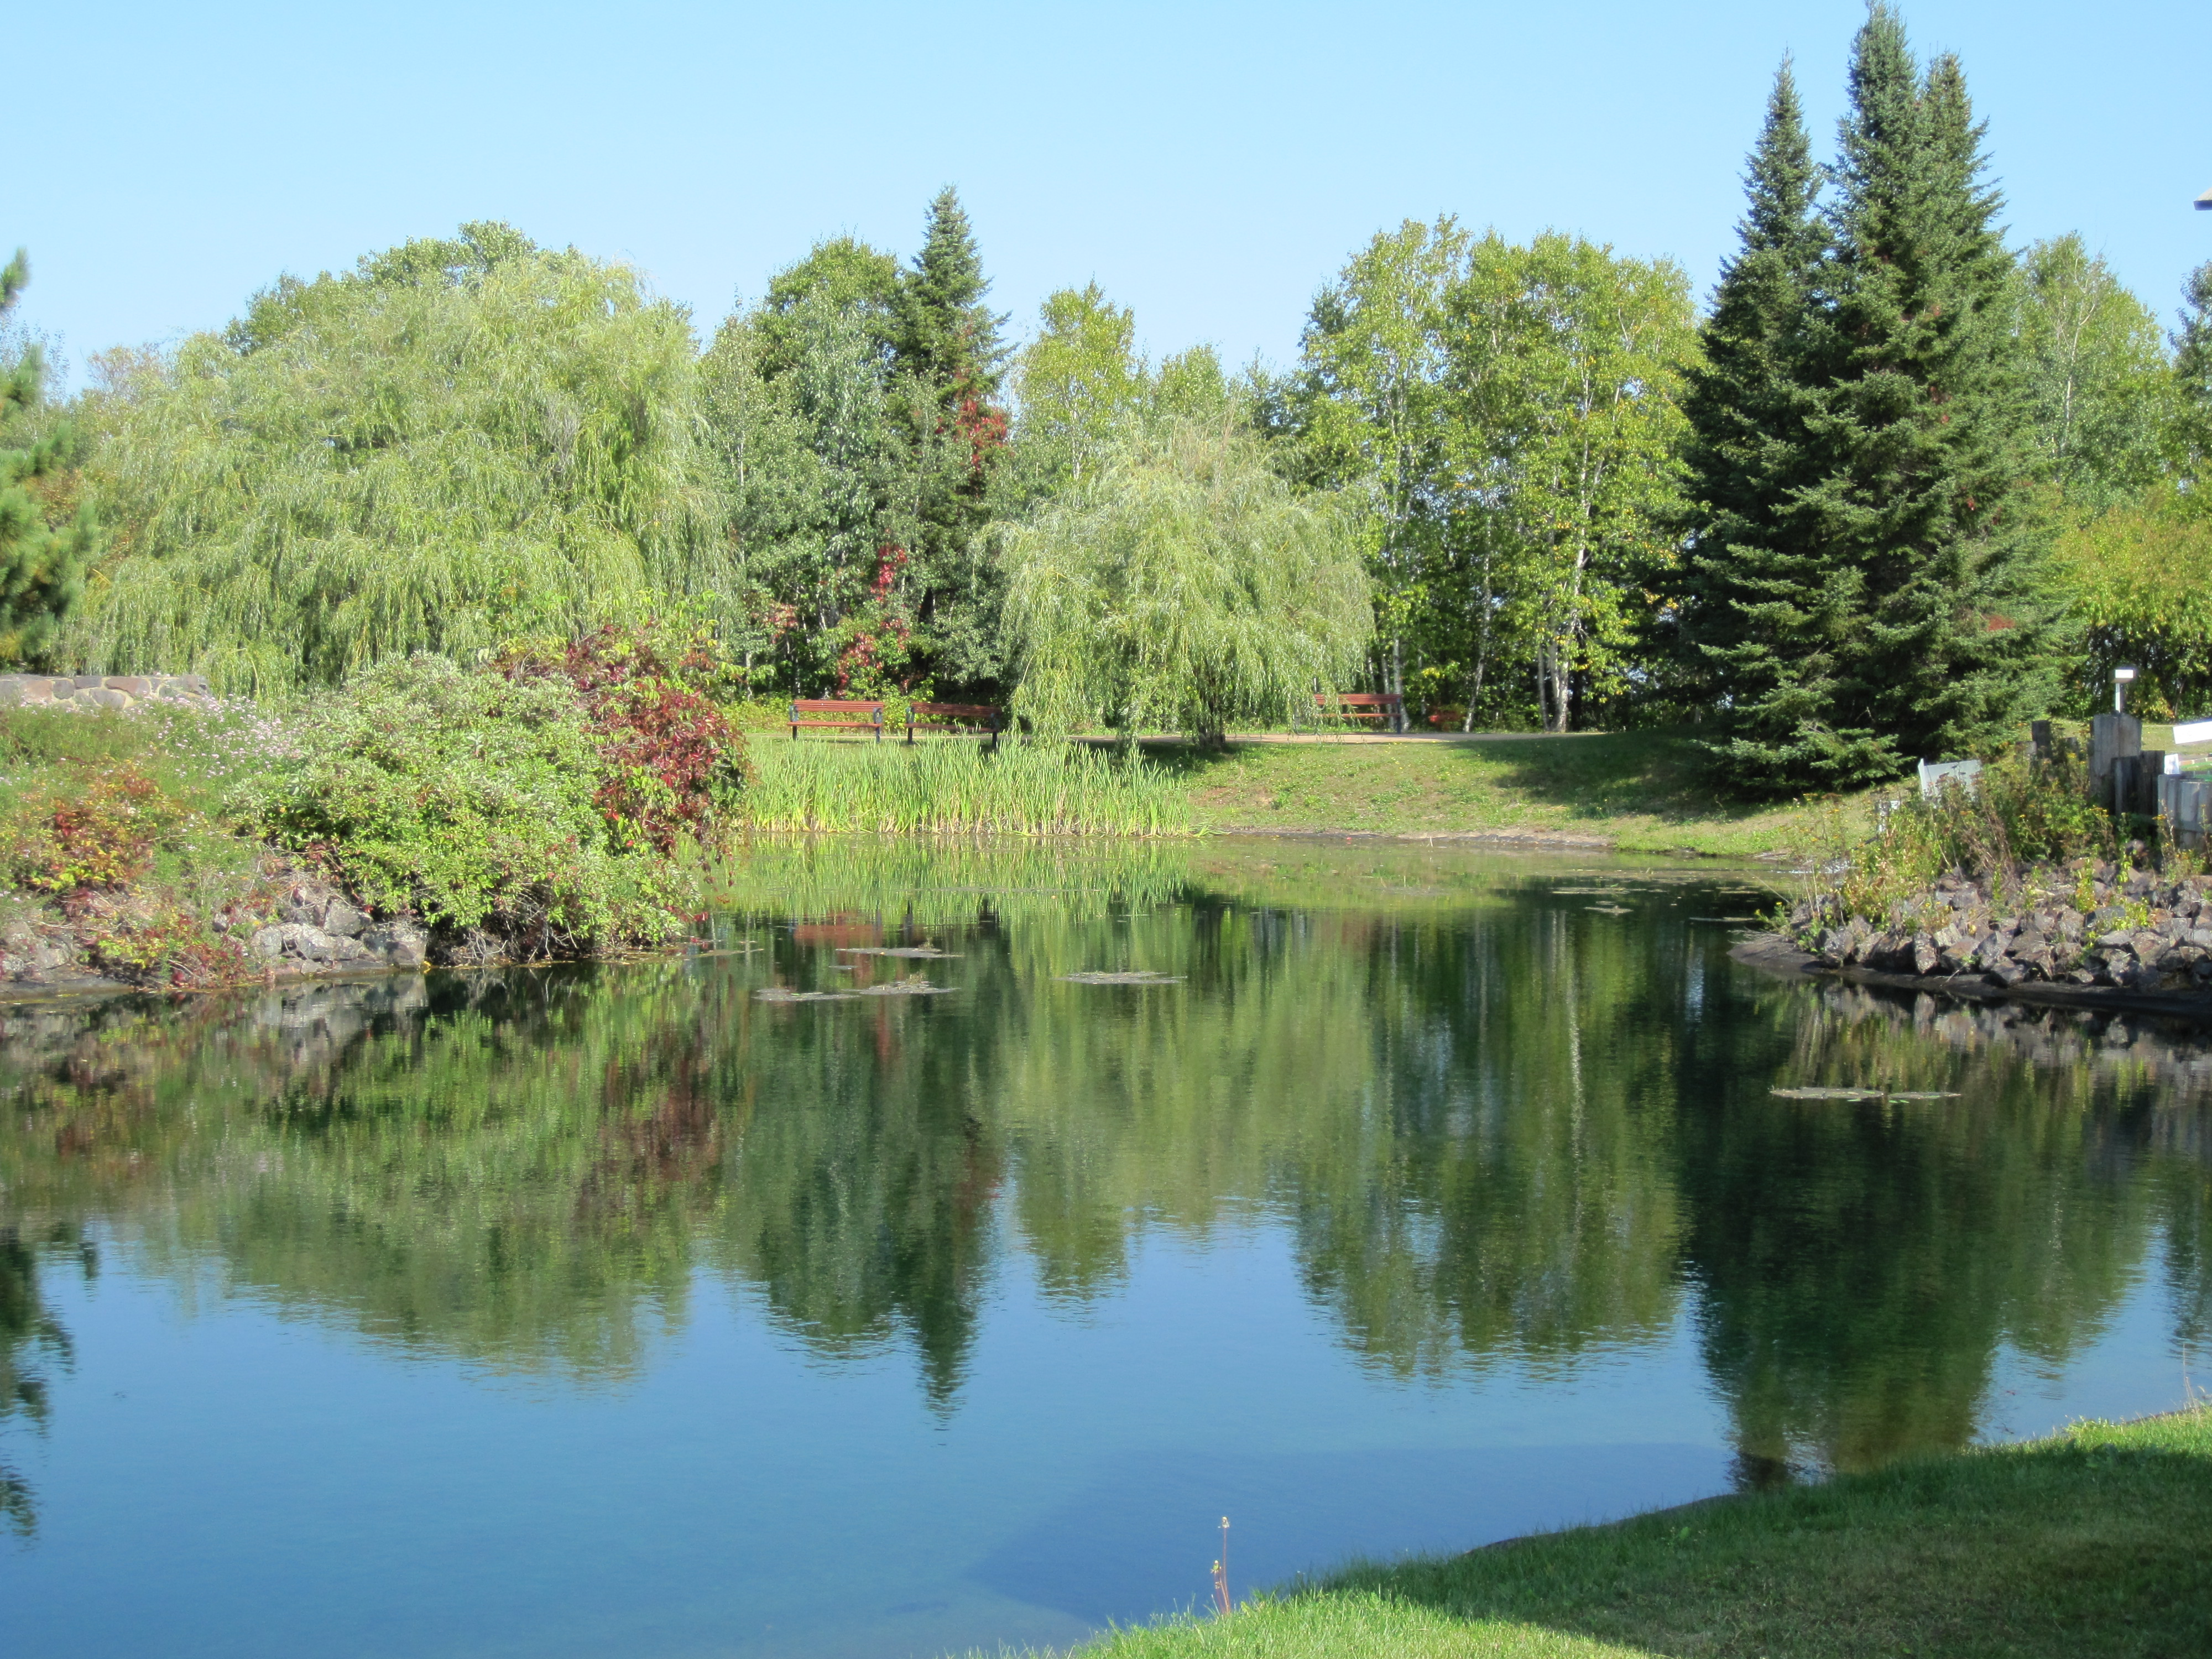 Peaceful pond